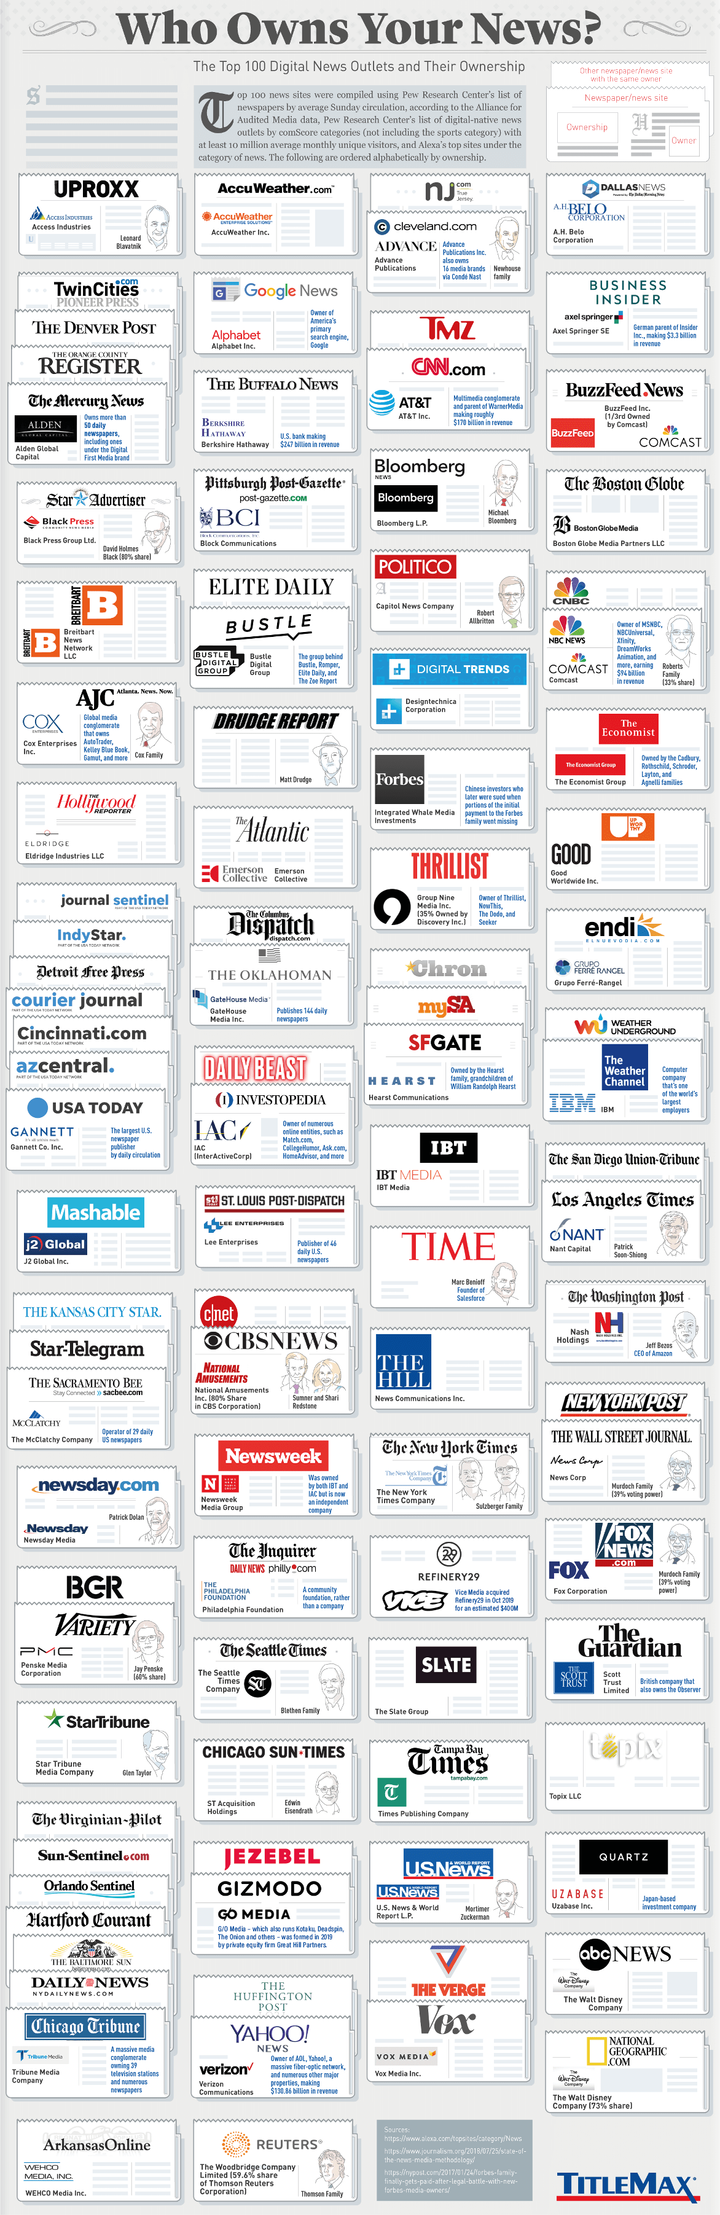 Who Owns Your News?